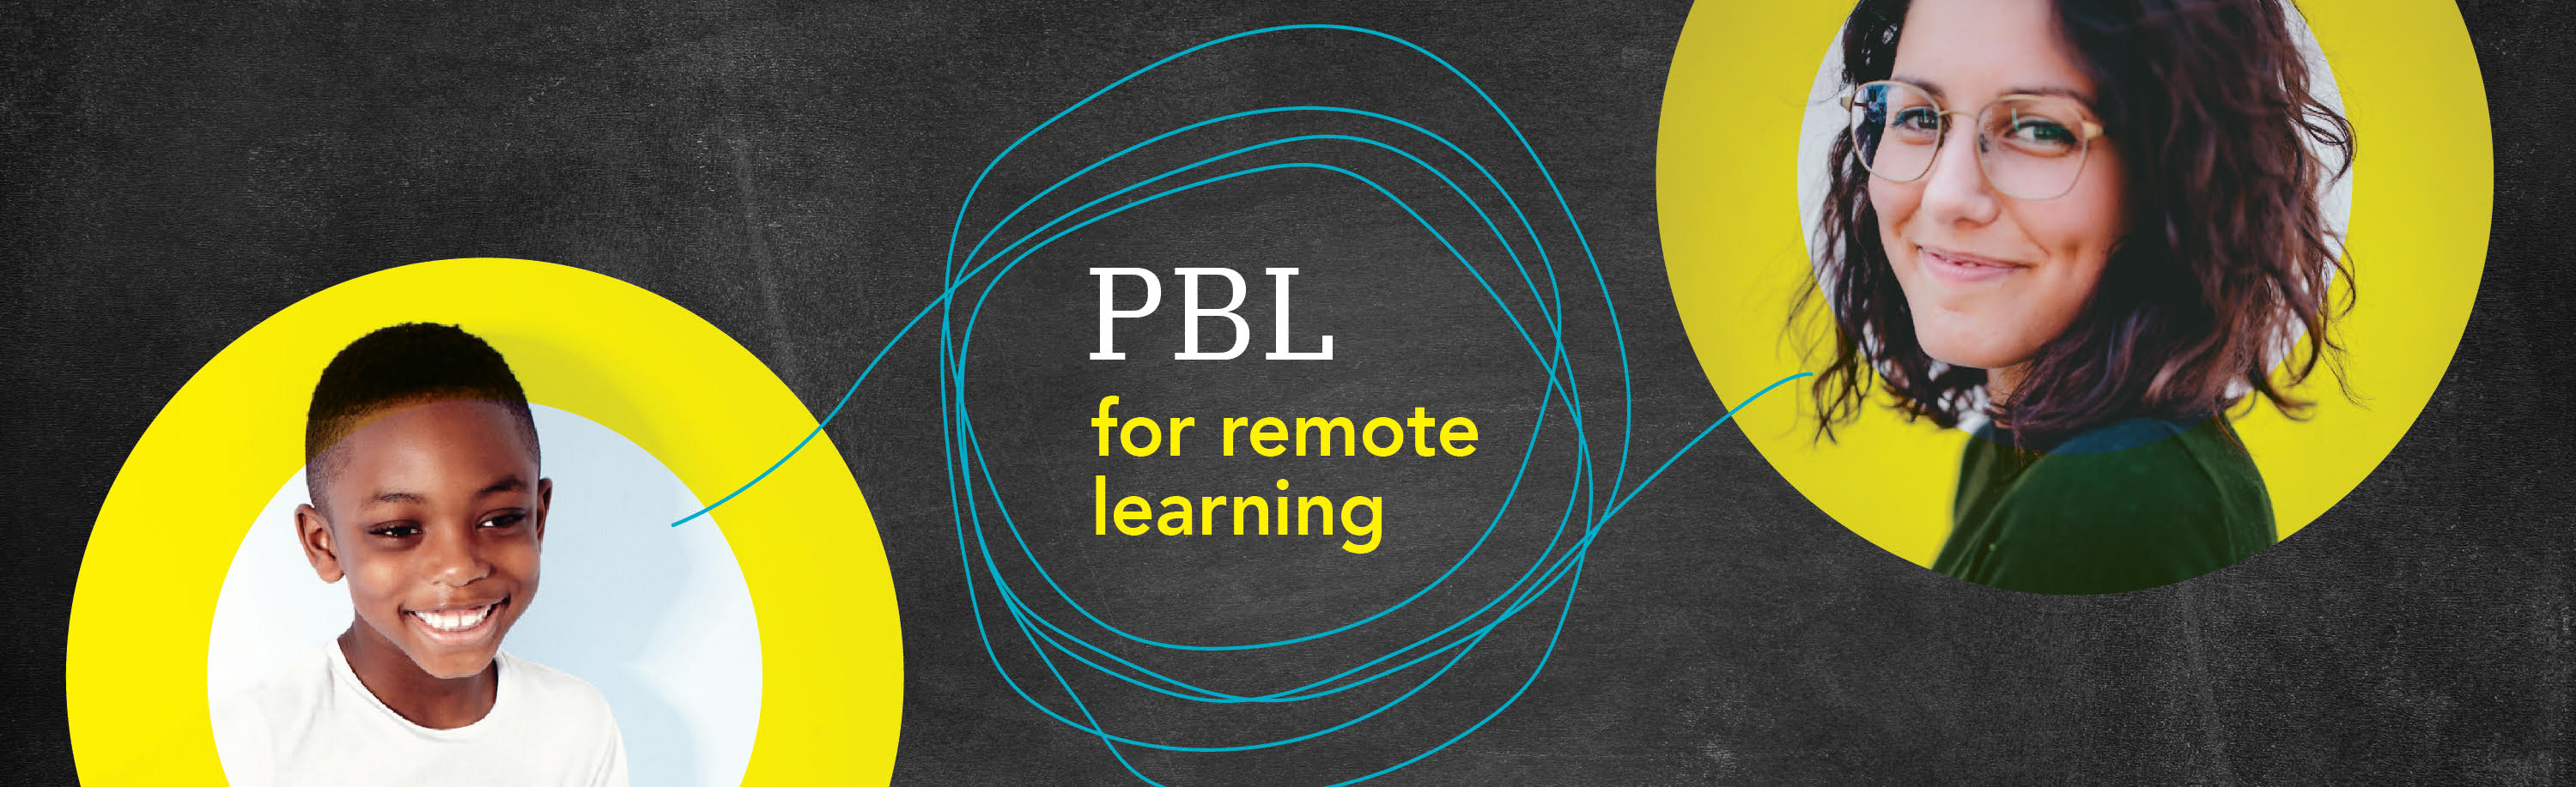 PBL Remote Microsite Banner